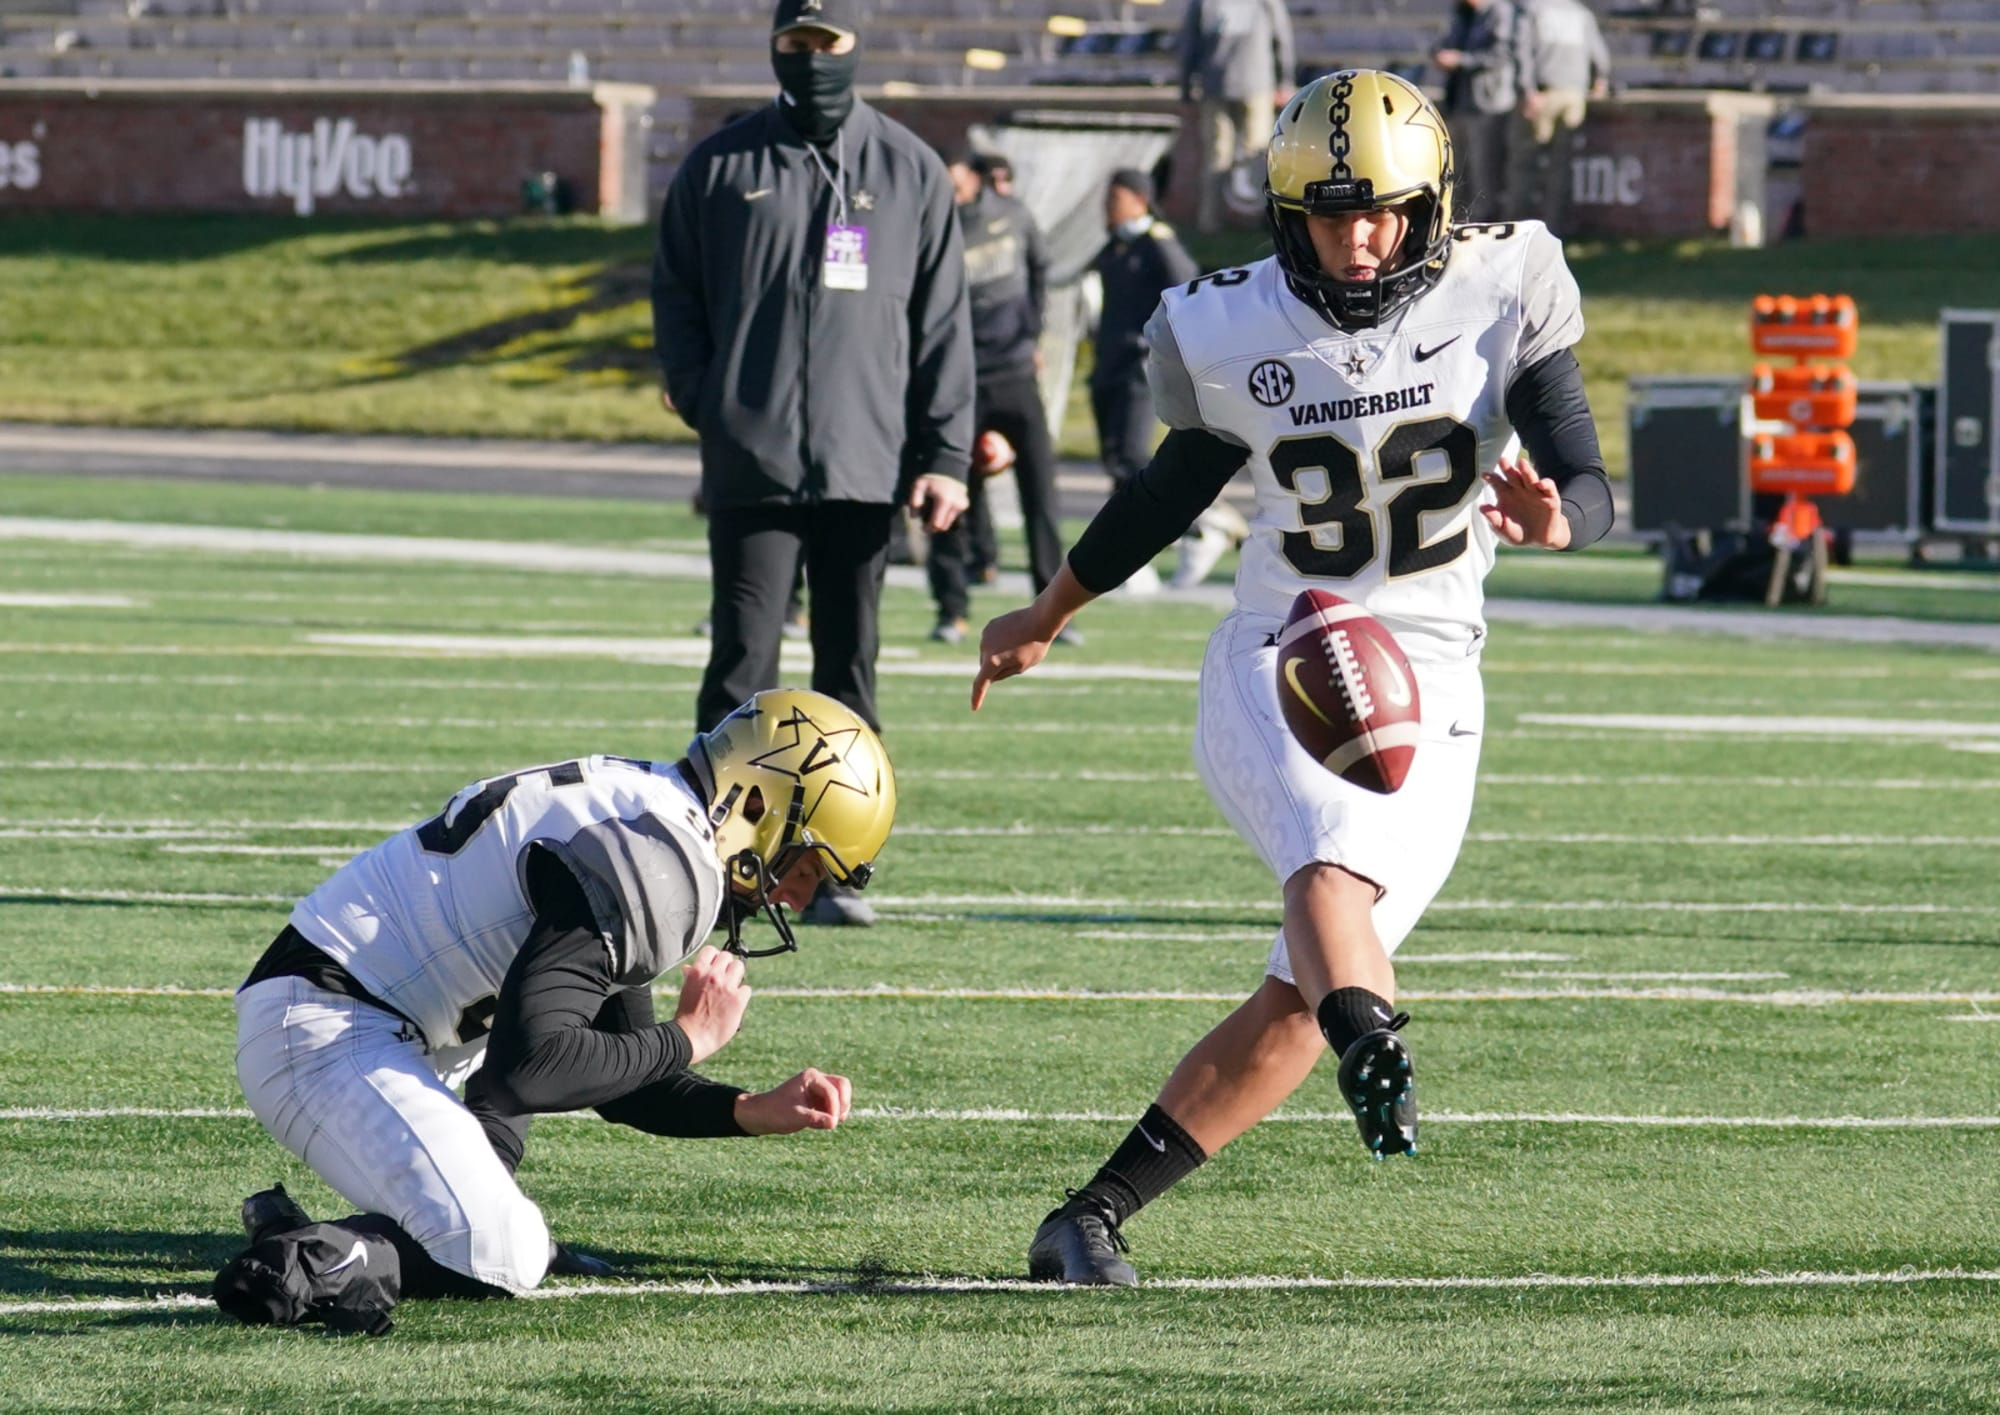 Vanderbilt's Sarah Fuller makes history as first woman to play in Power 5 football game (Video)